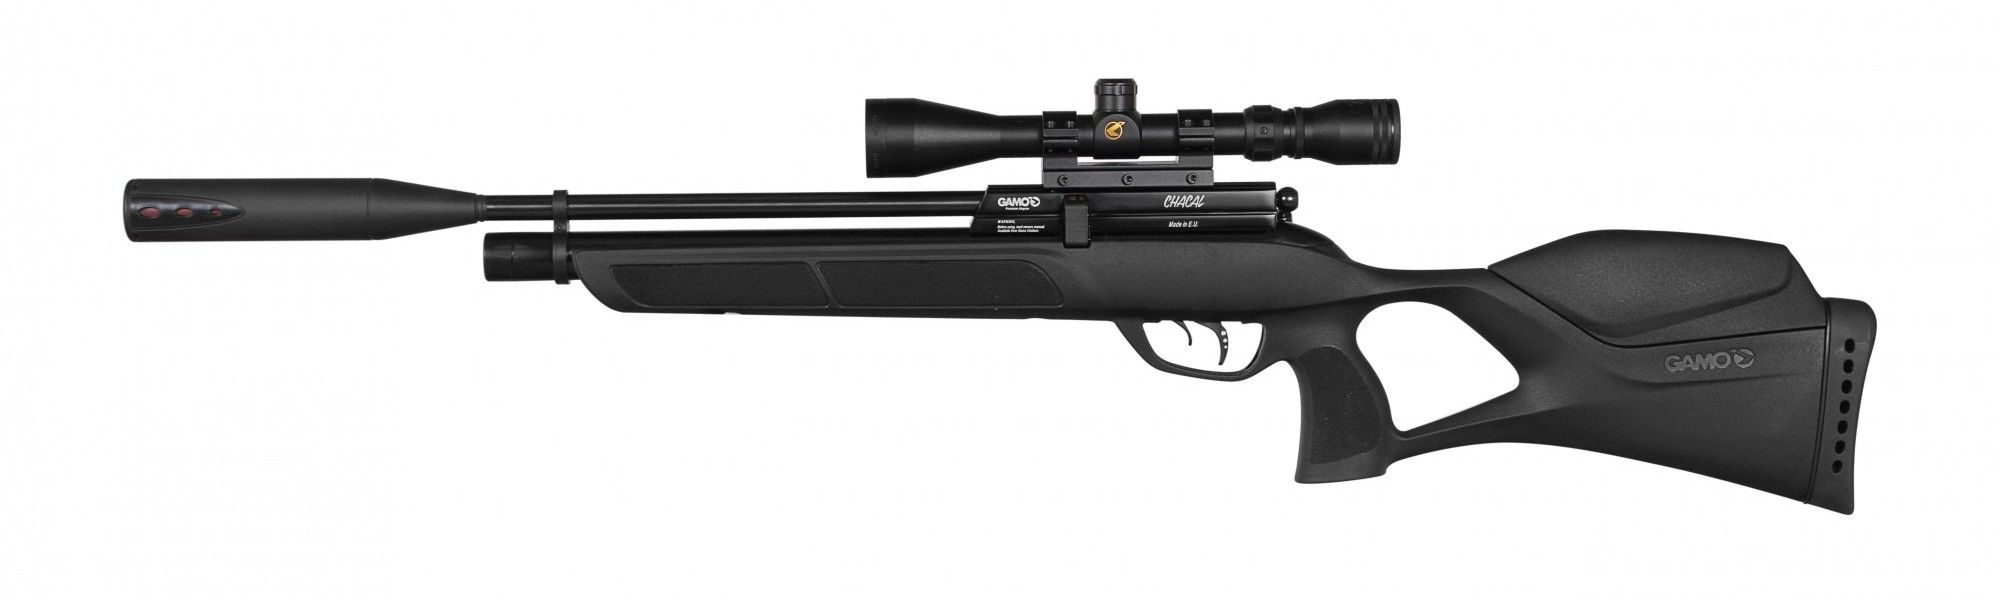 CHACAL PCP GAMO AIRGUN CARBINE 5.5MM CALIBER